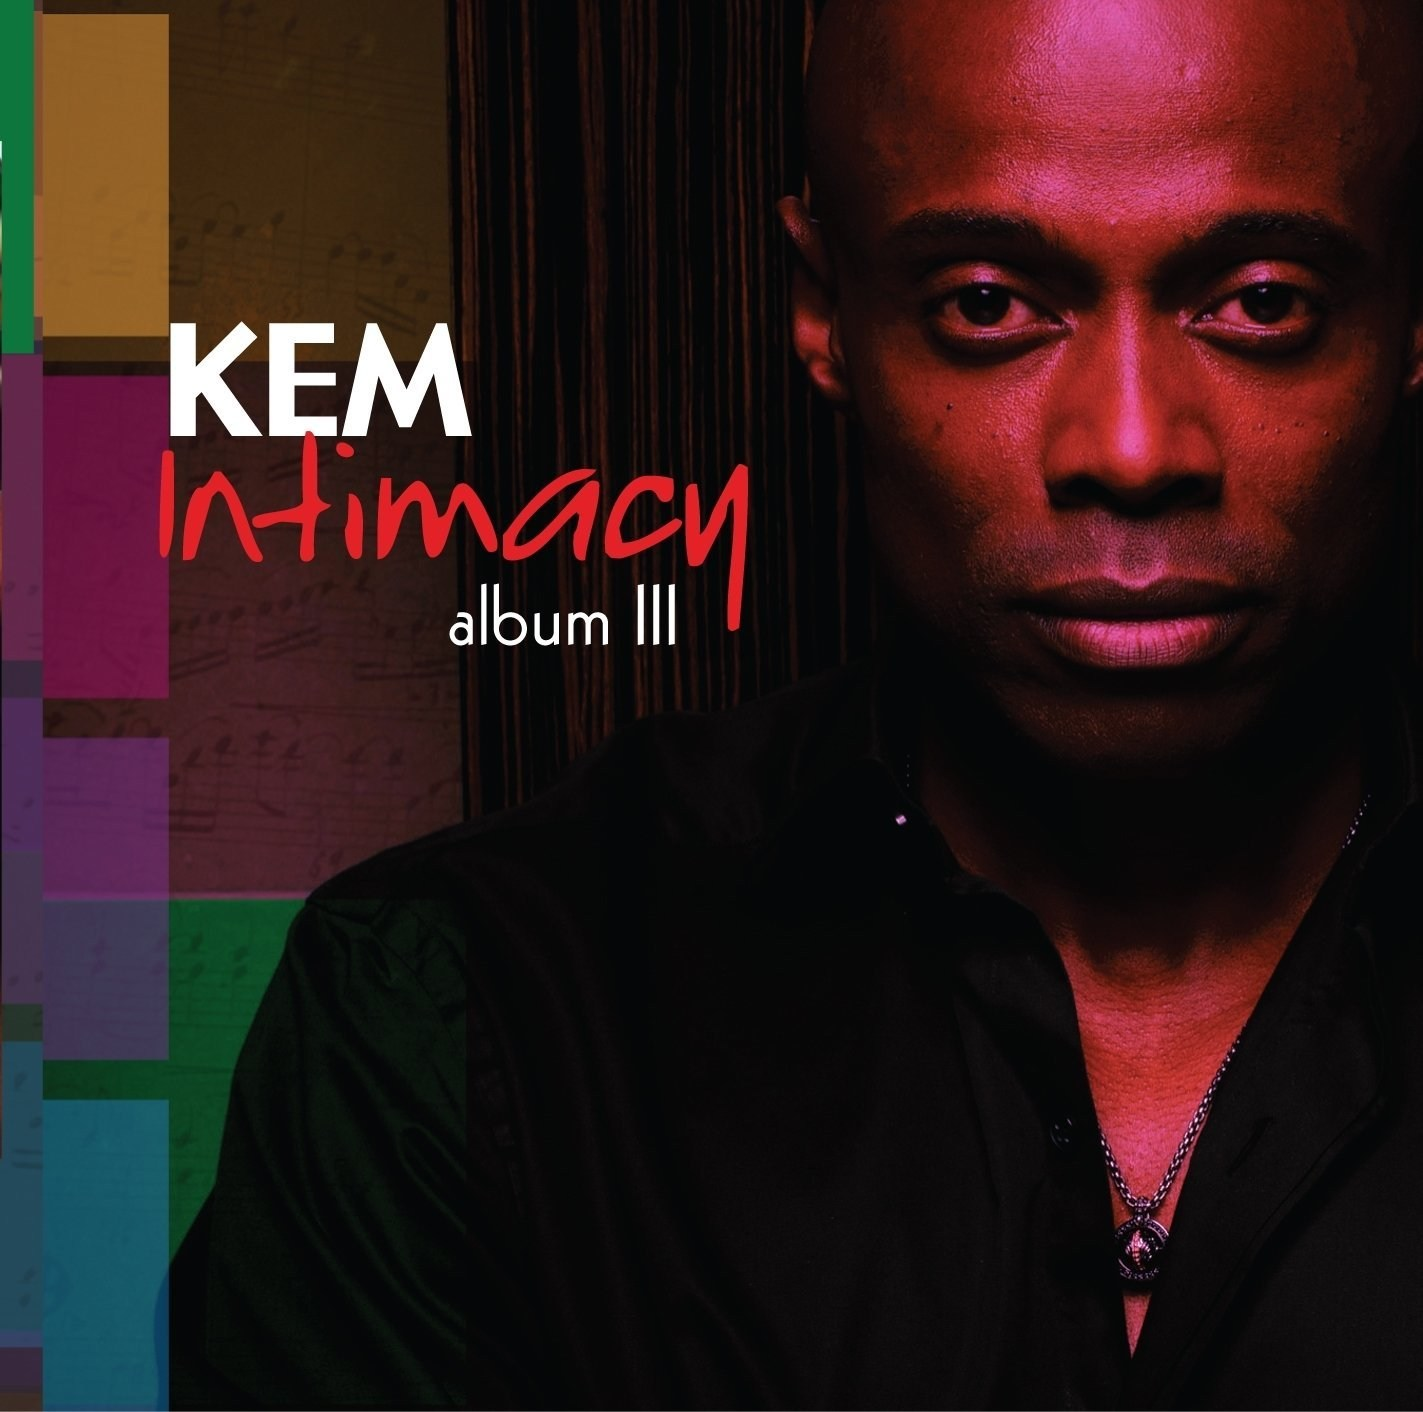 KEM_Intimacy Album III